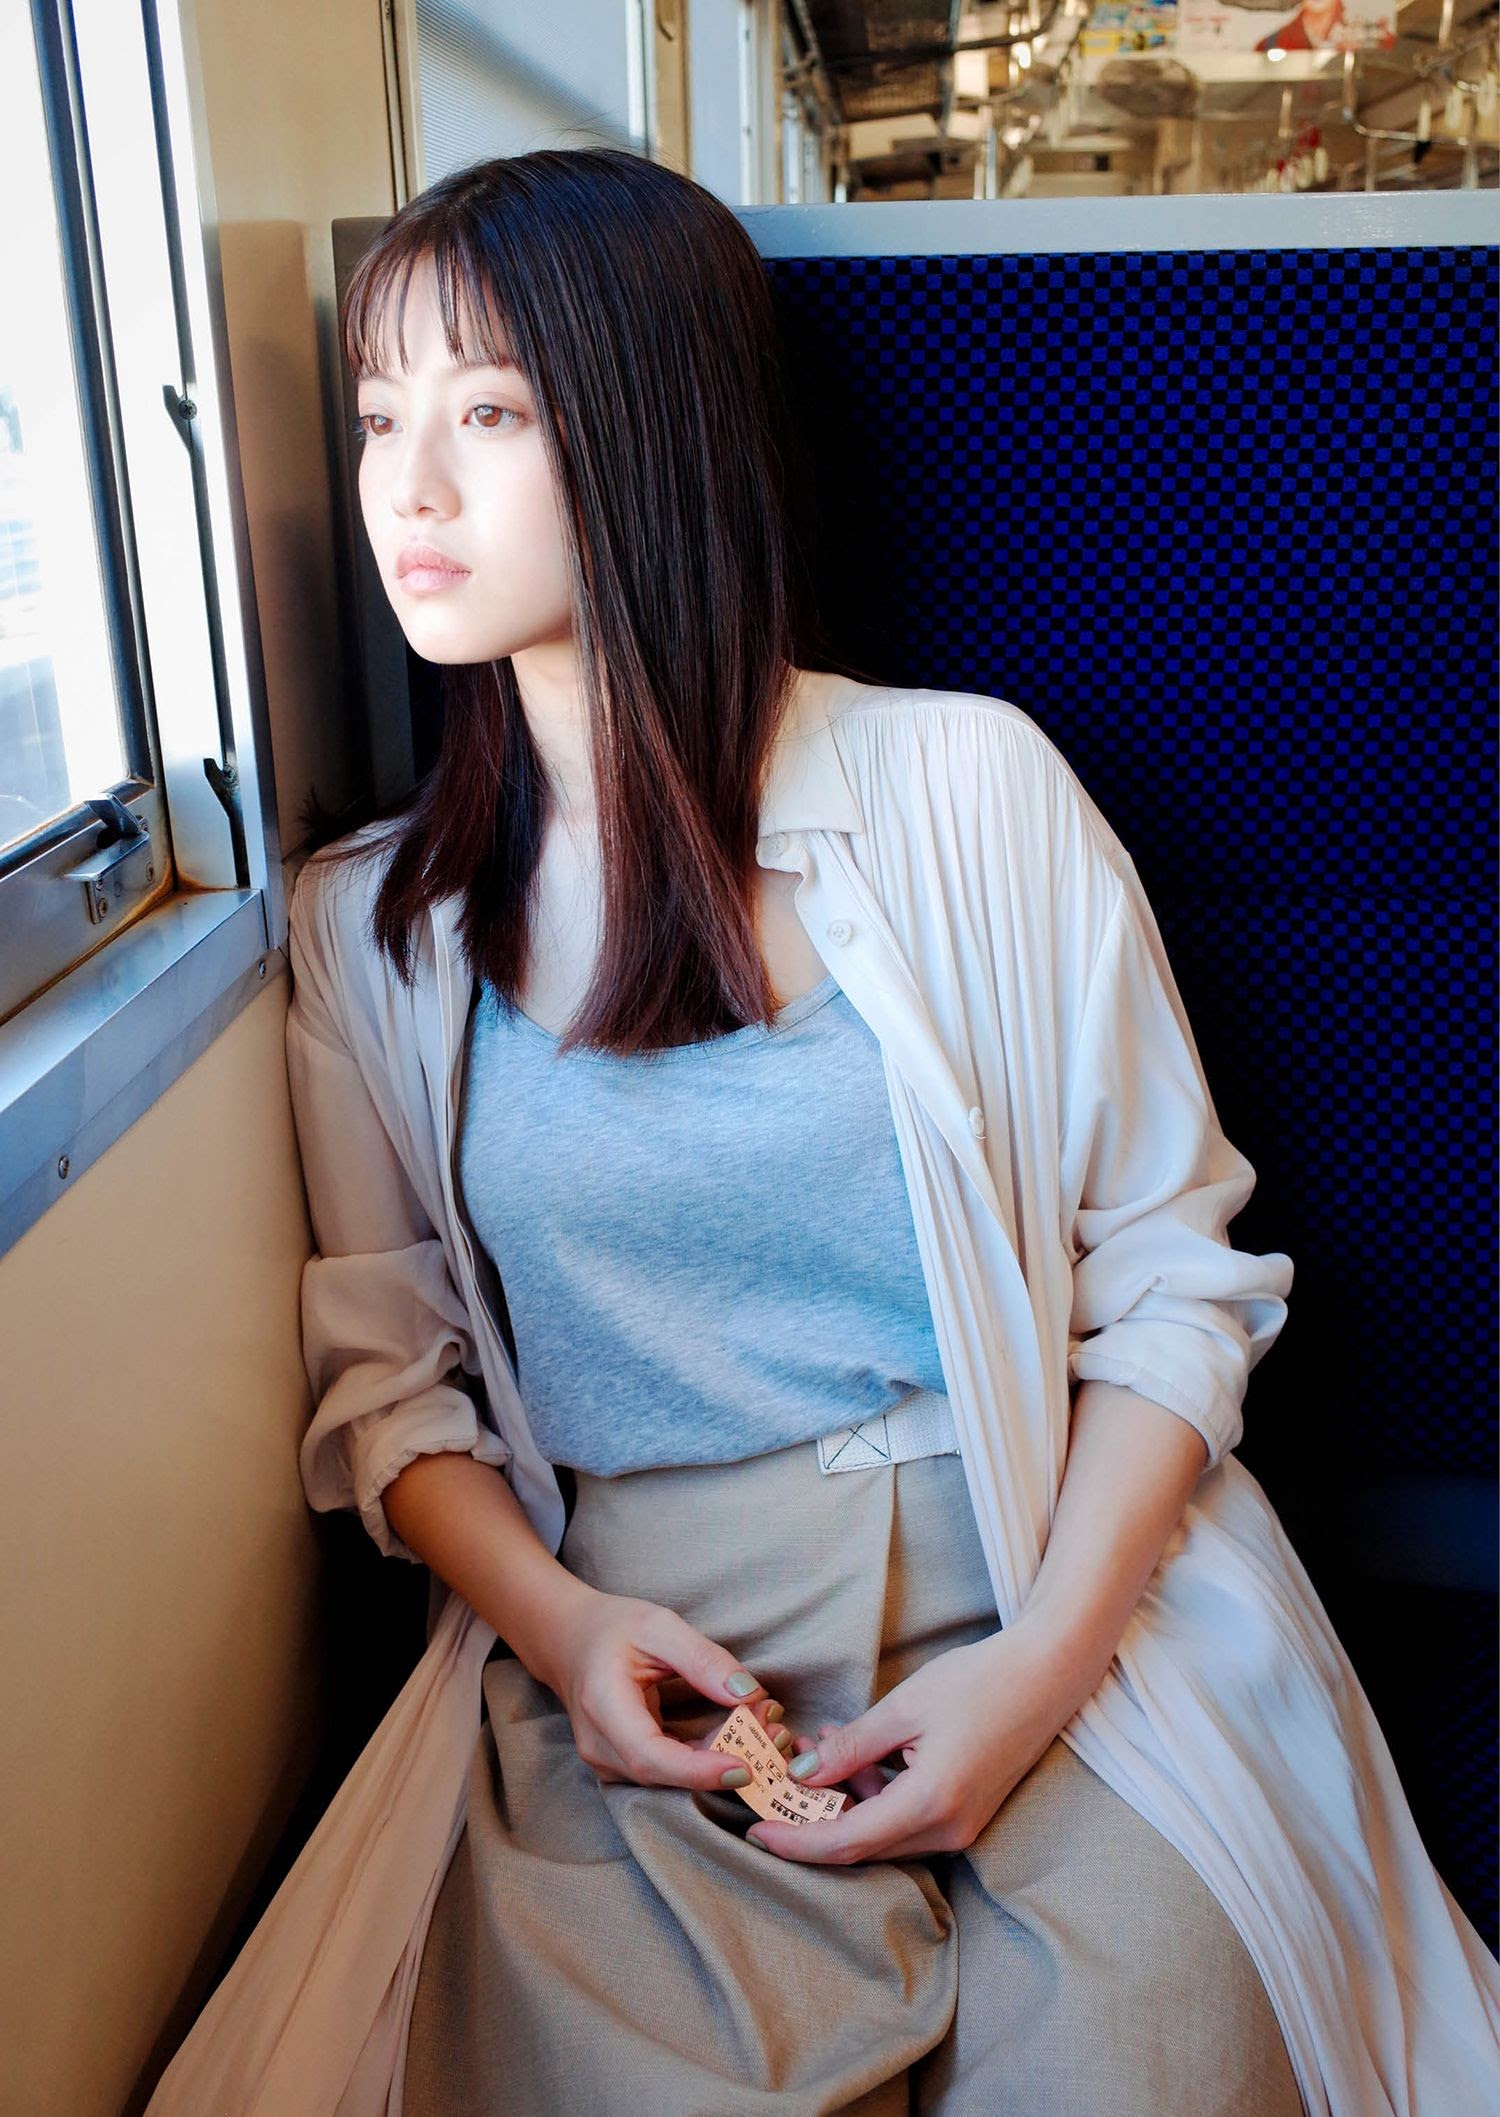 Without a doubt the youngest actress Mio Imada145